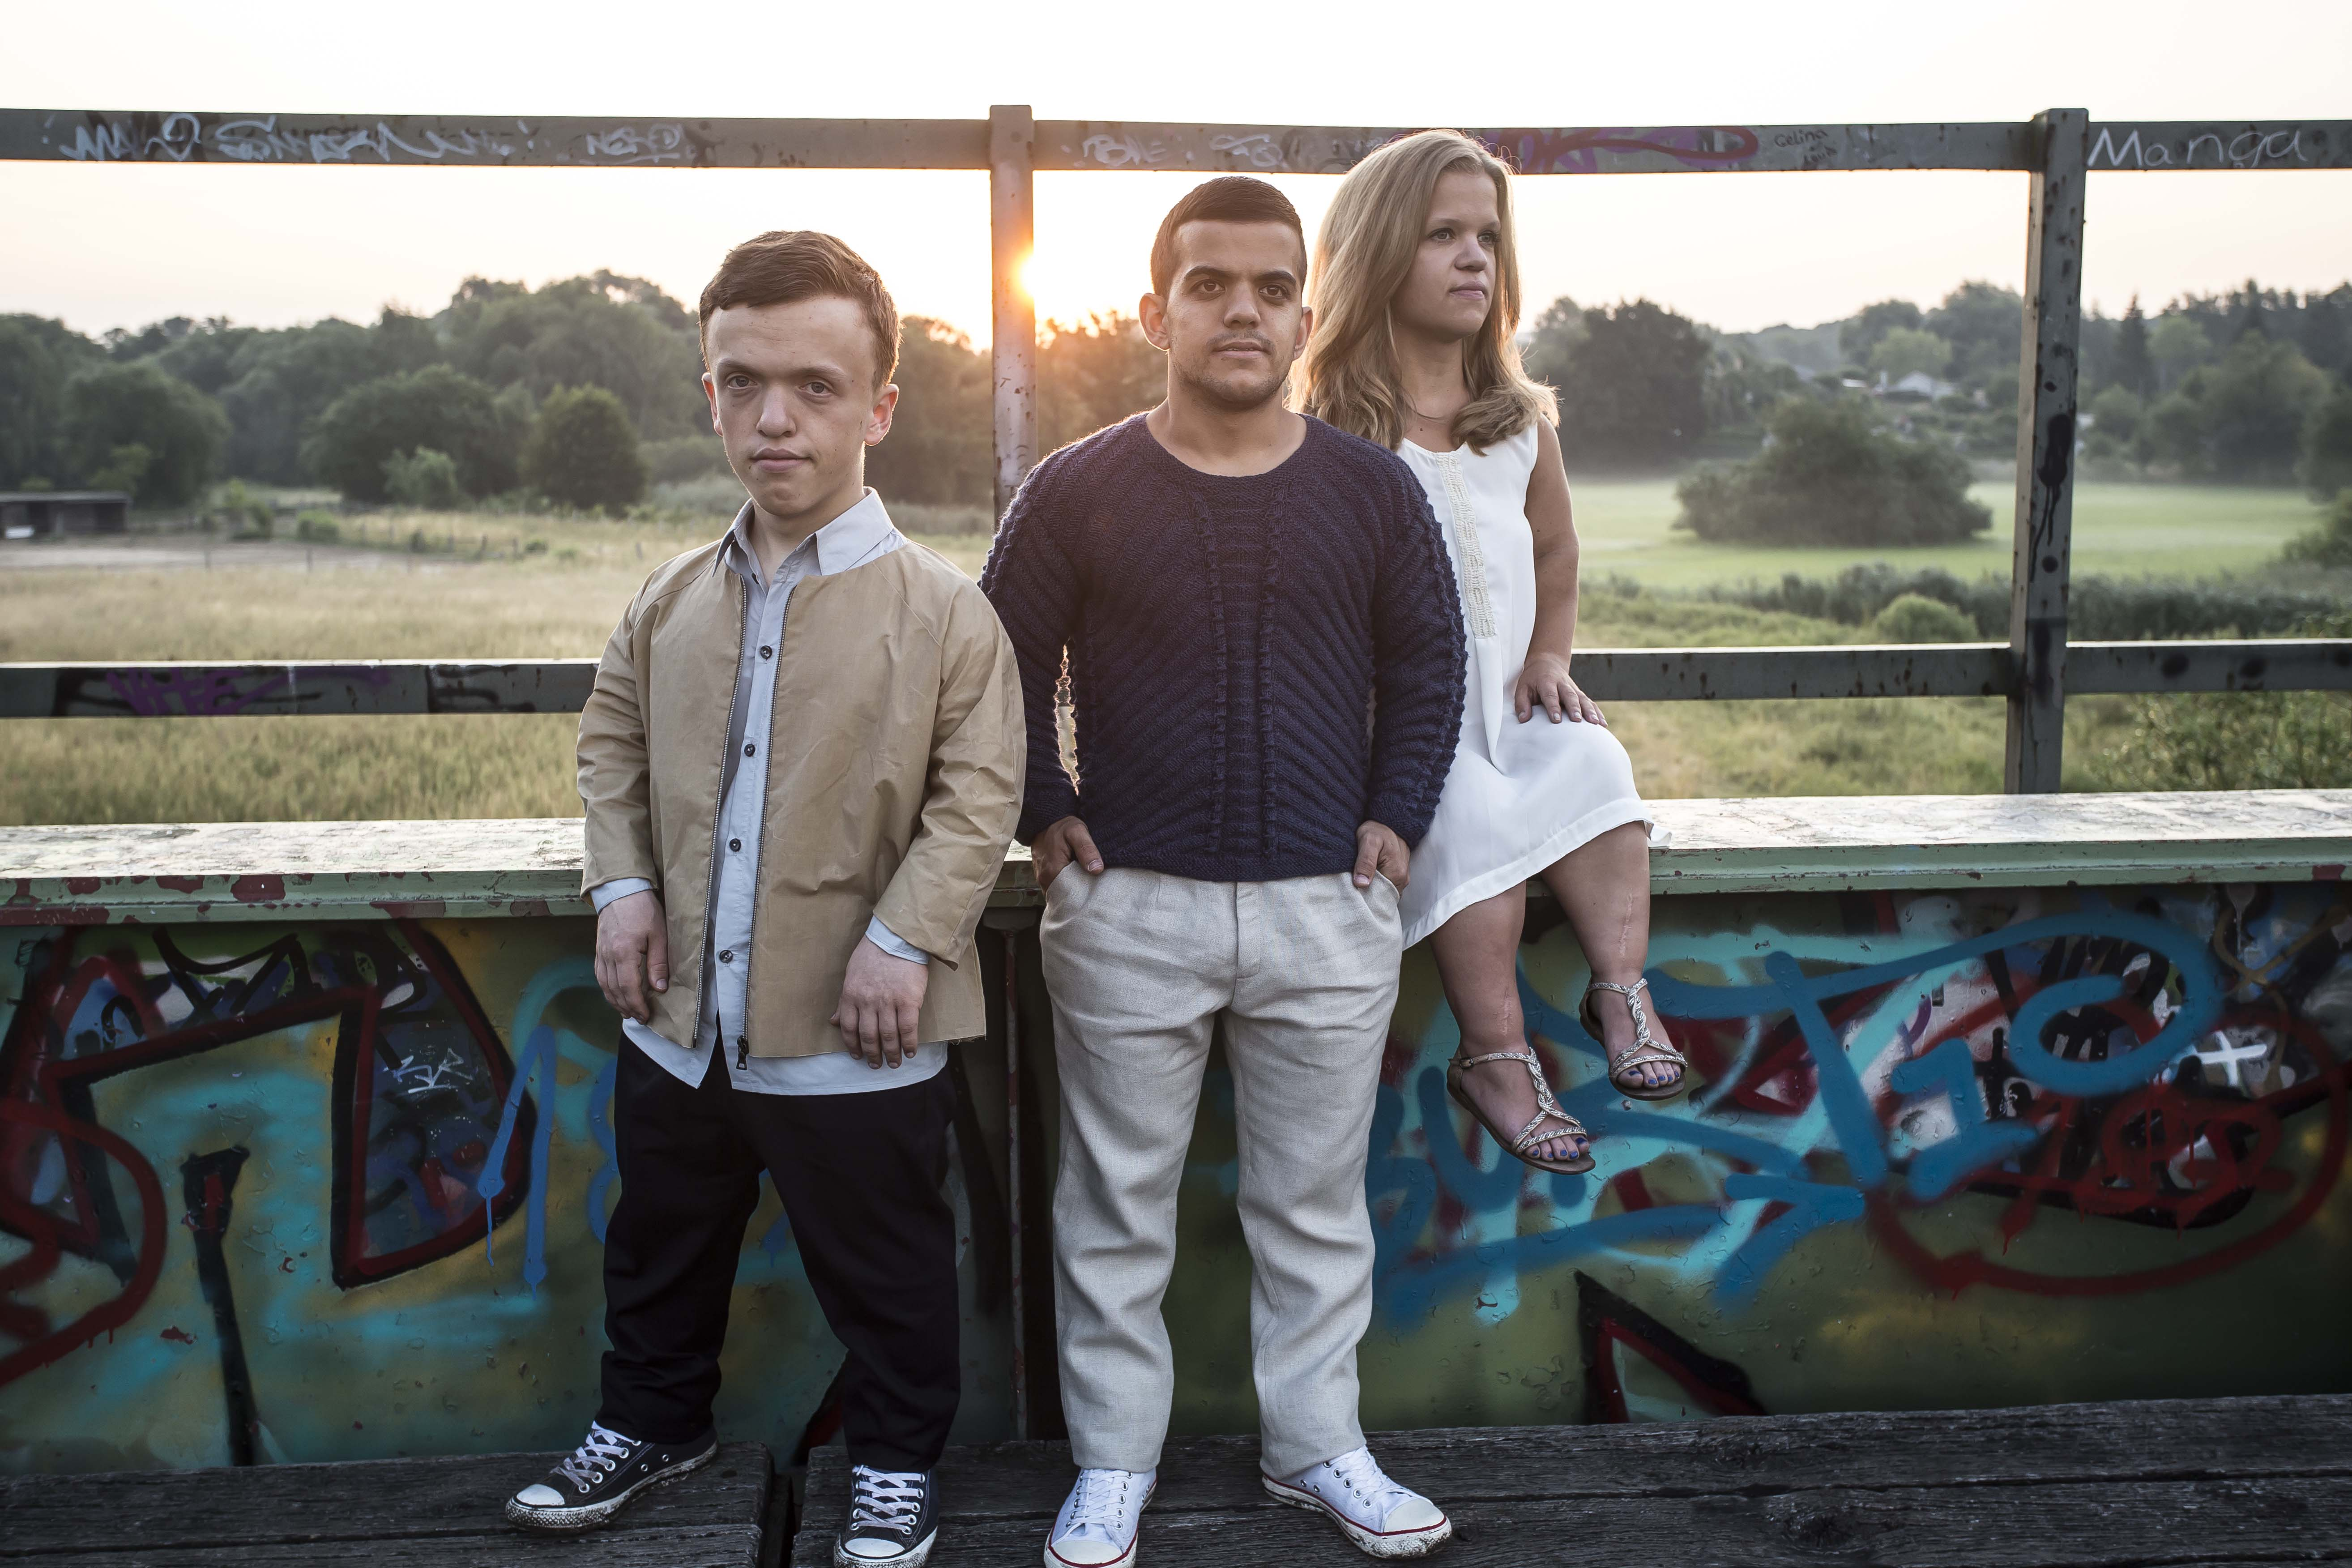 photo shooting models with dwarfism in sunset